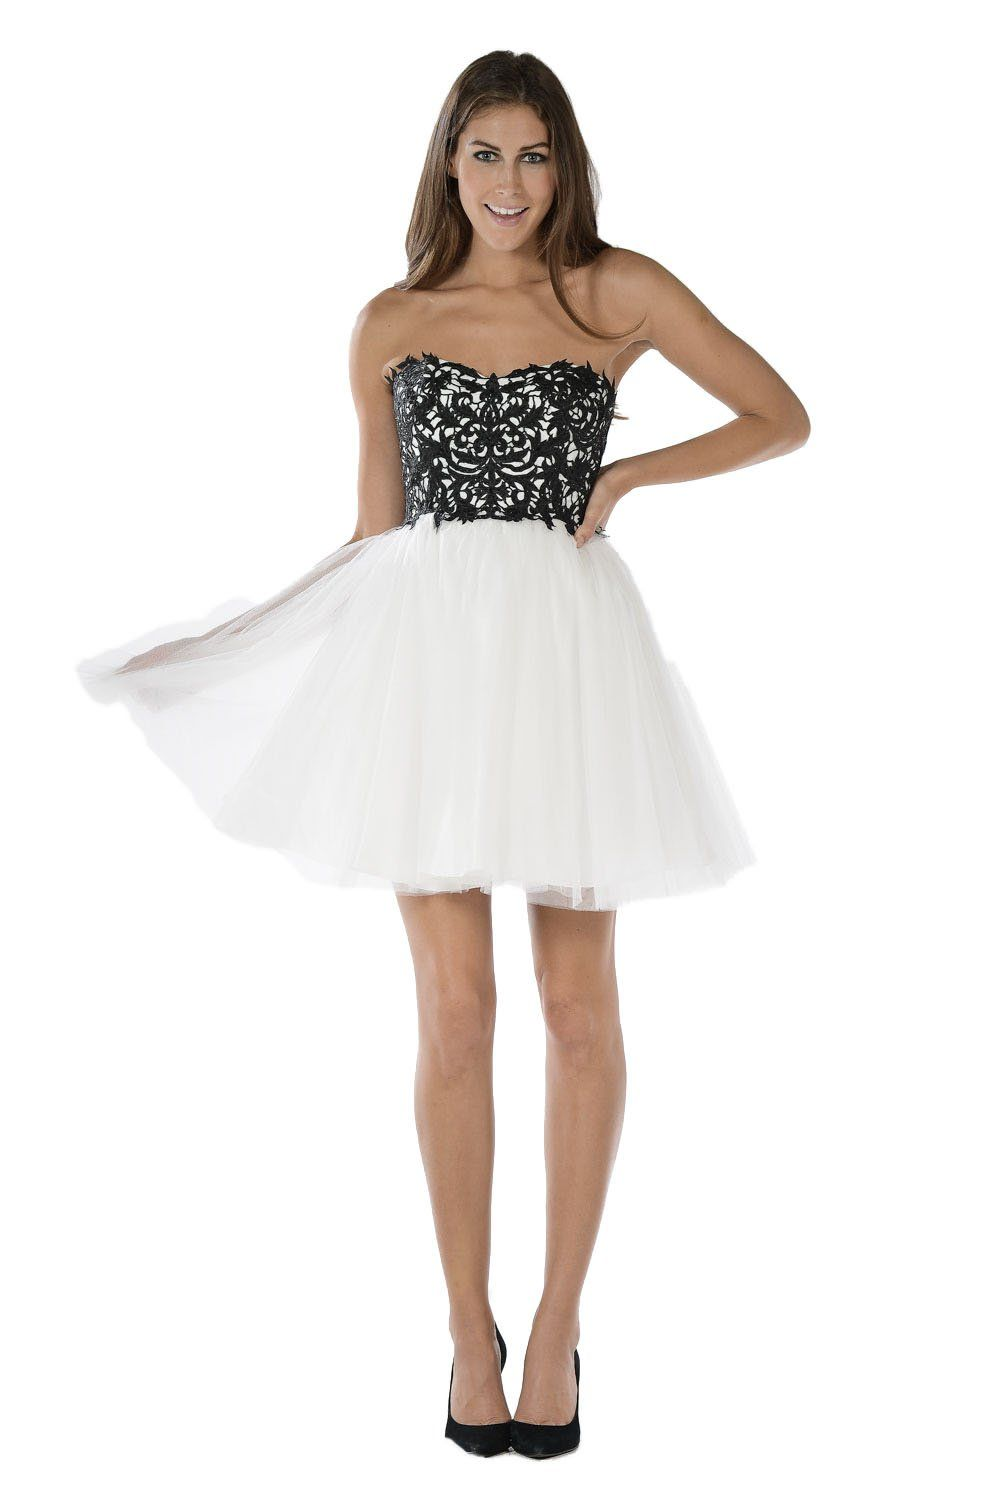 Blackwhite short strapless dress with lace bodice by poly usa